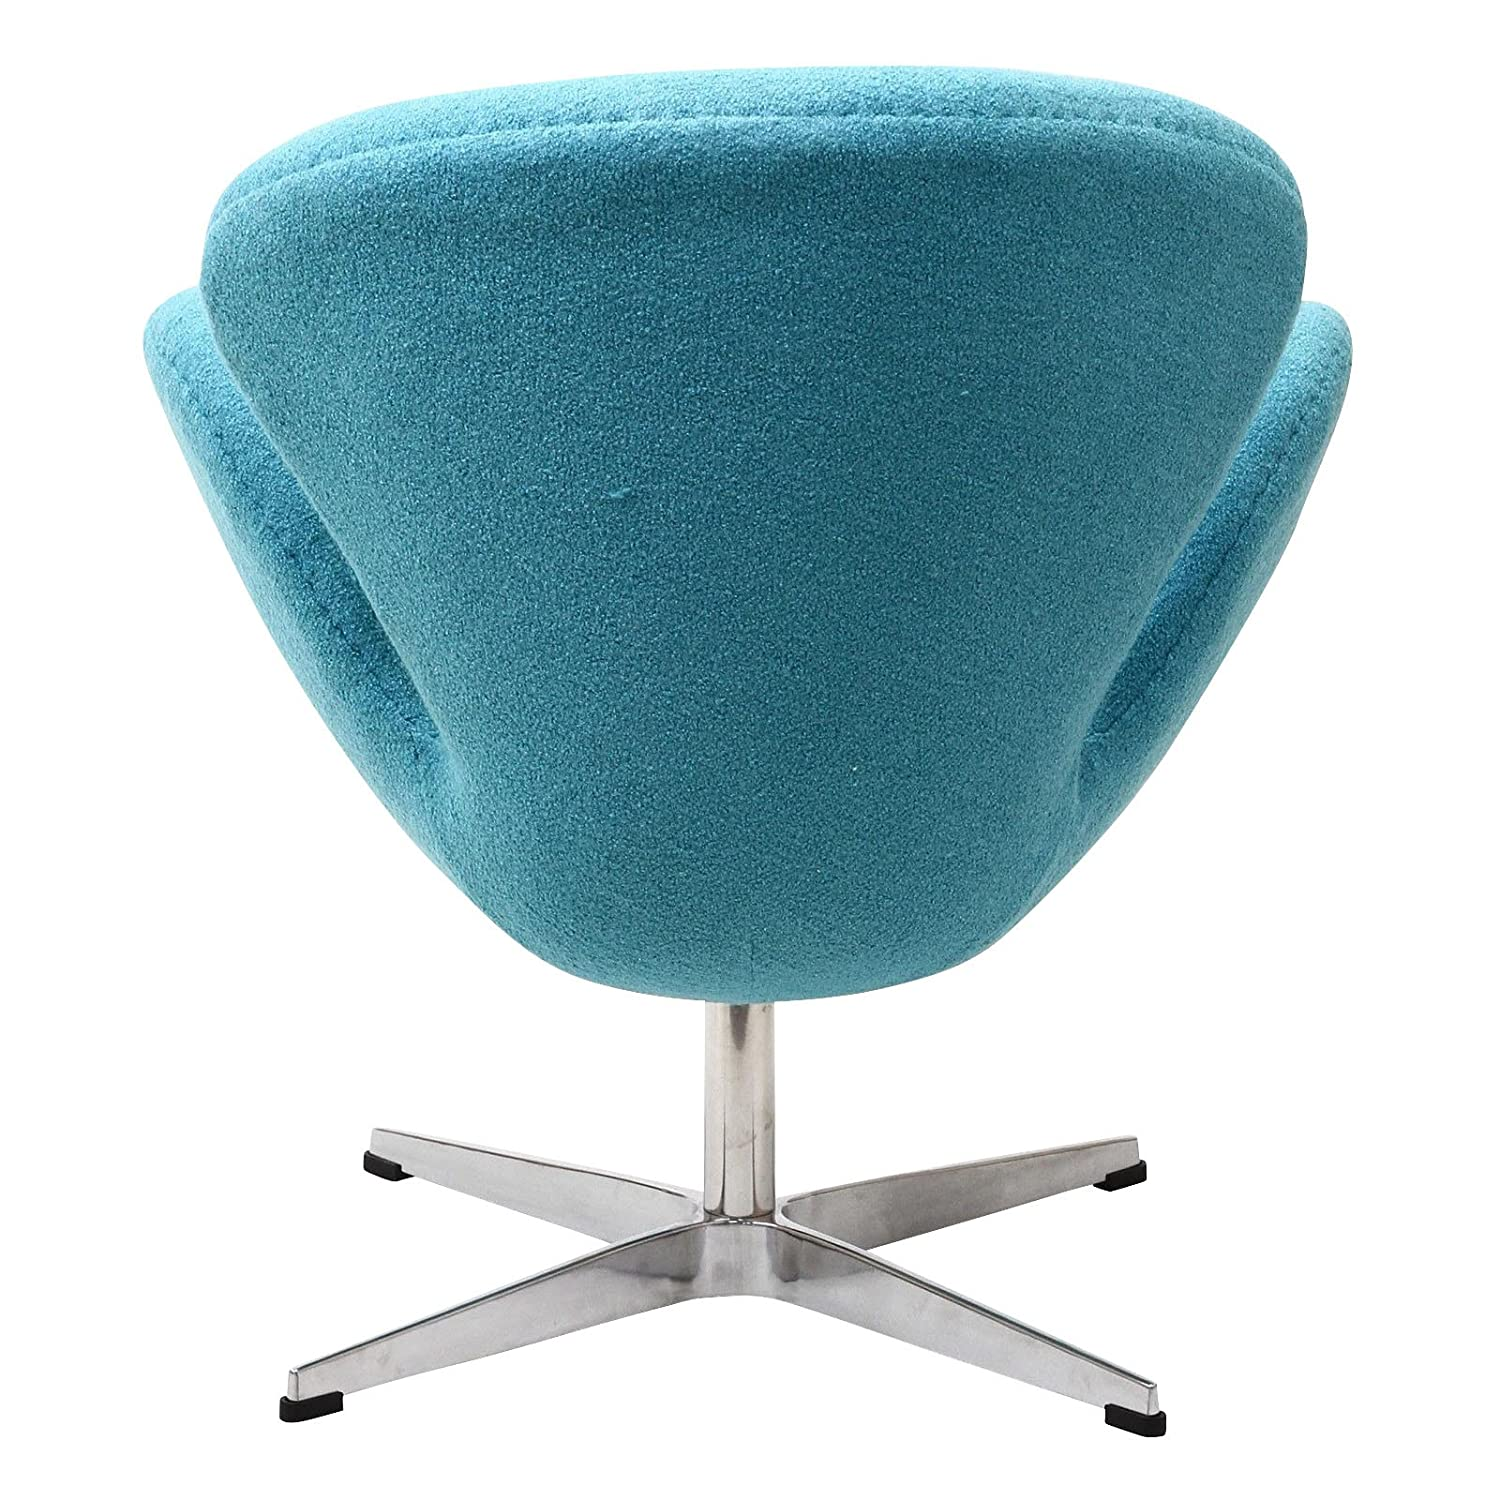 Amazon Modway Wing Lounge Chair in Baby Blue Kitchen & Dining